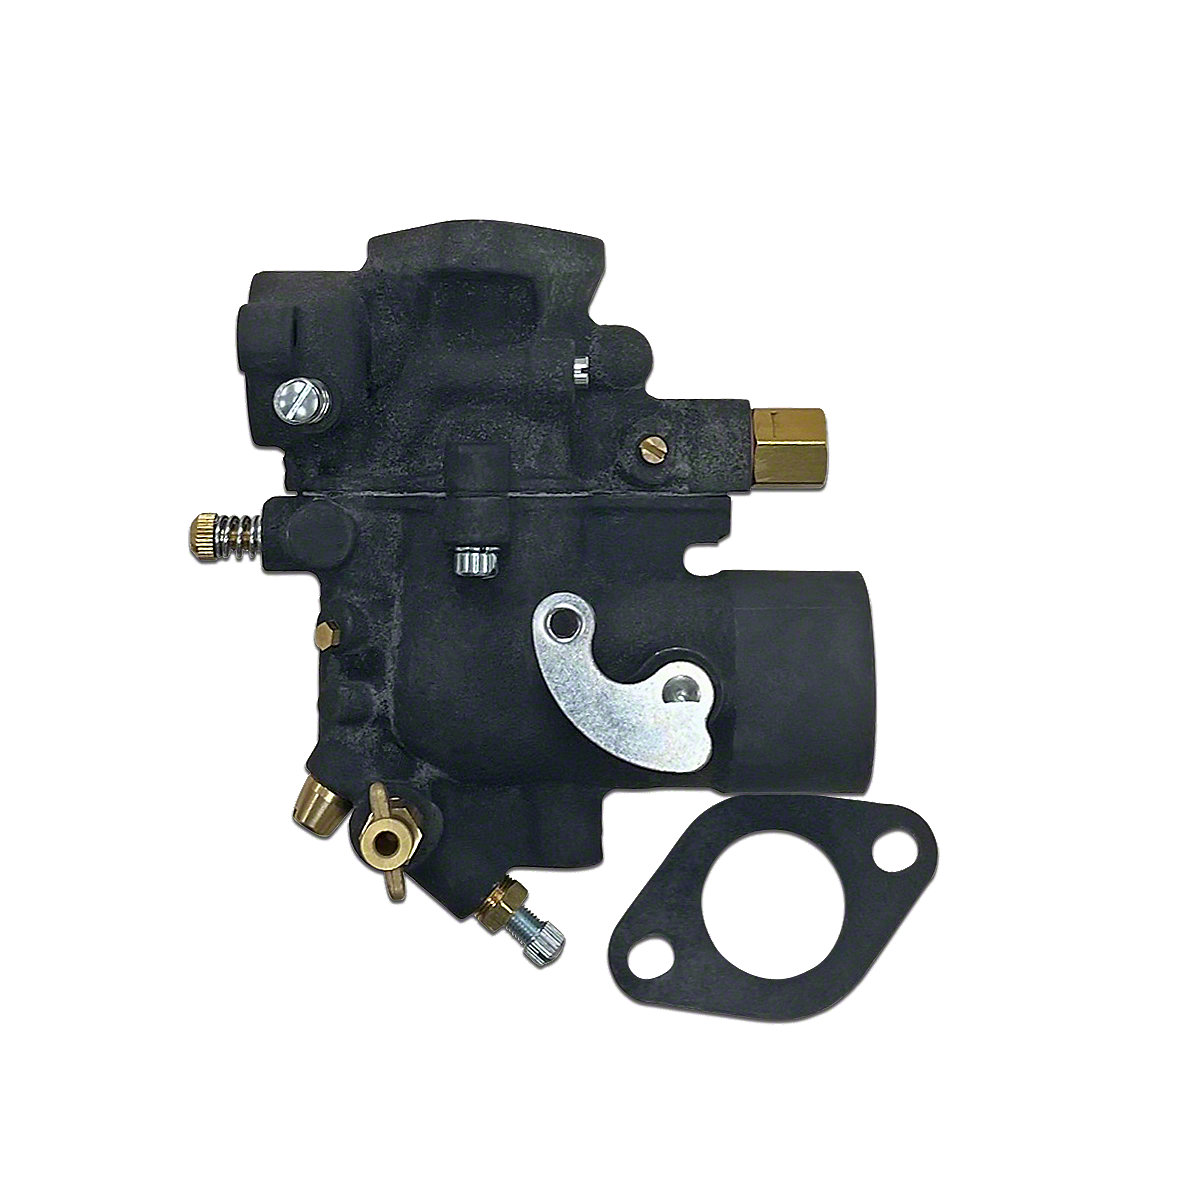 IHS3383 Carburetor for Farmall H